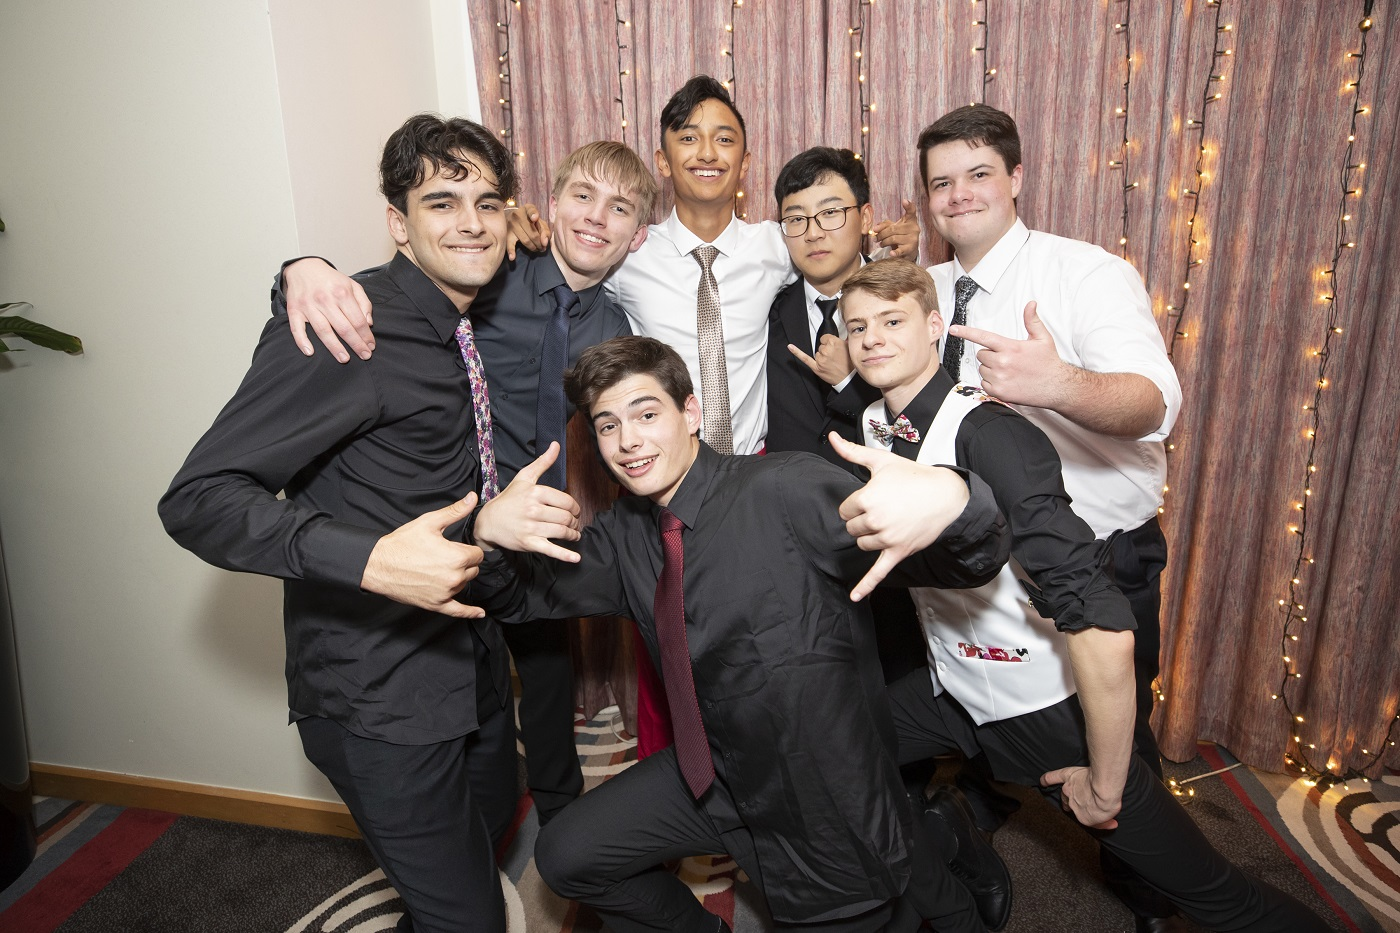 Wentworth College - School Ball 2018 8